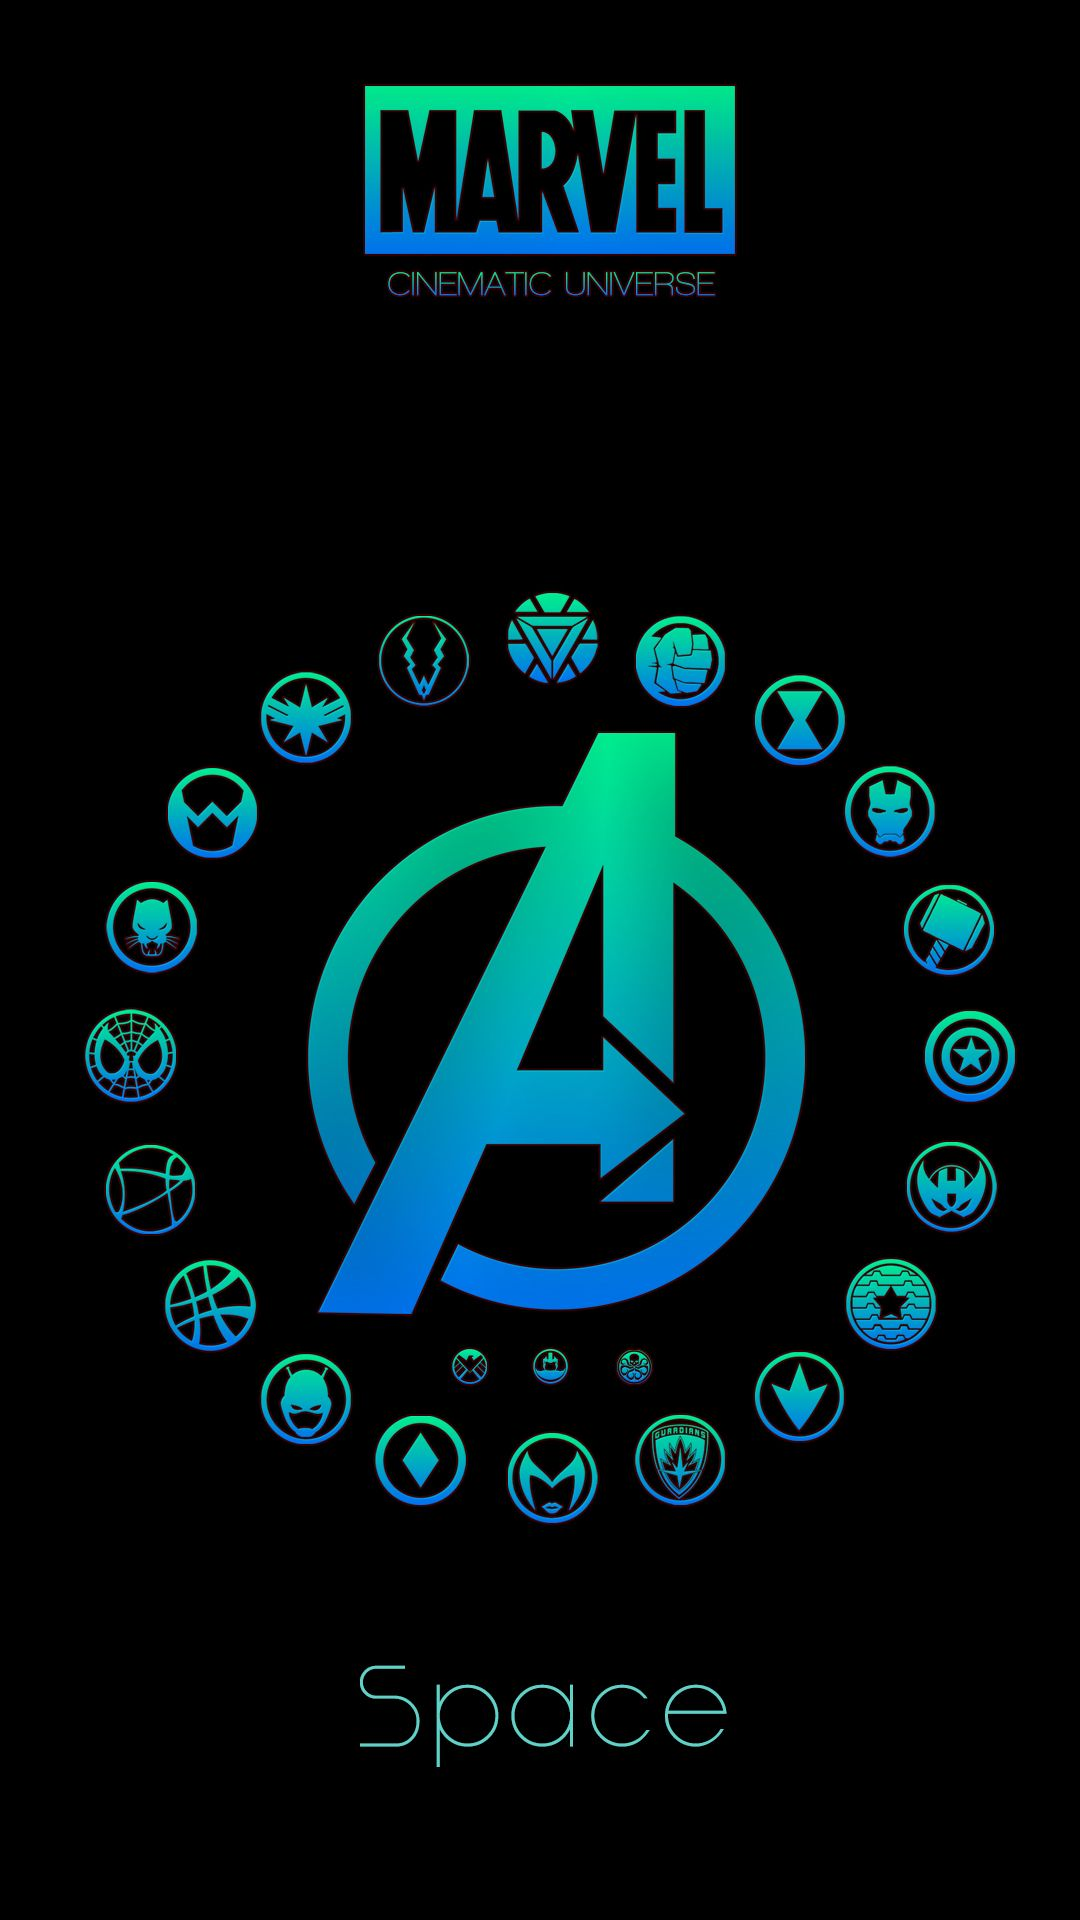 Pin by Pavithran KD on MCU iPhone Wallpaper Marvel films